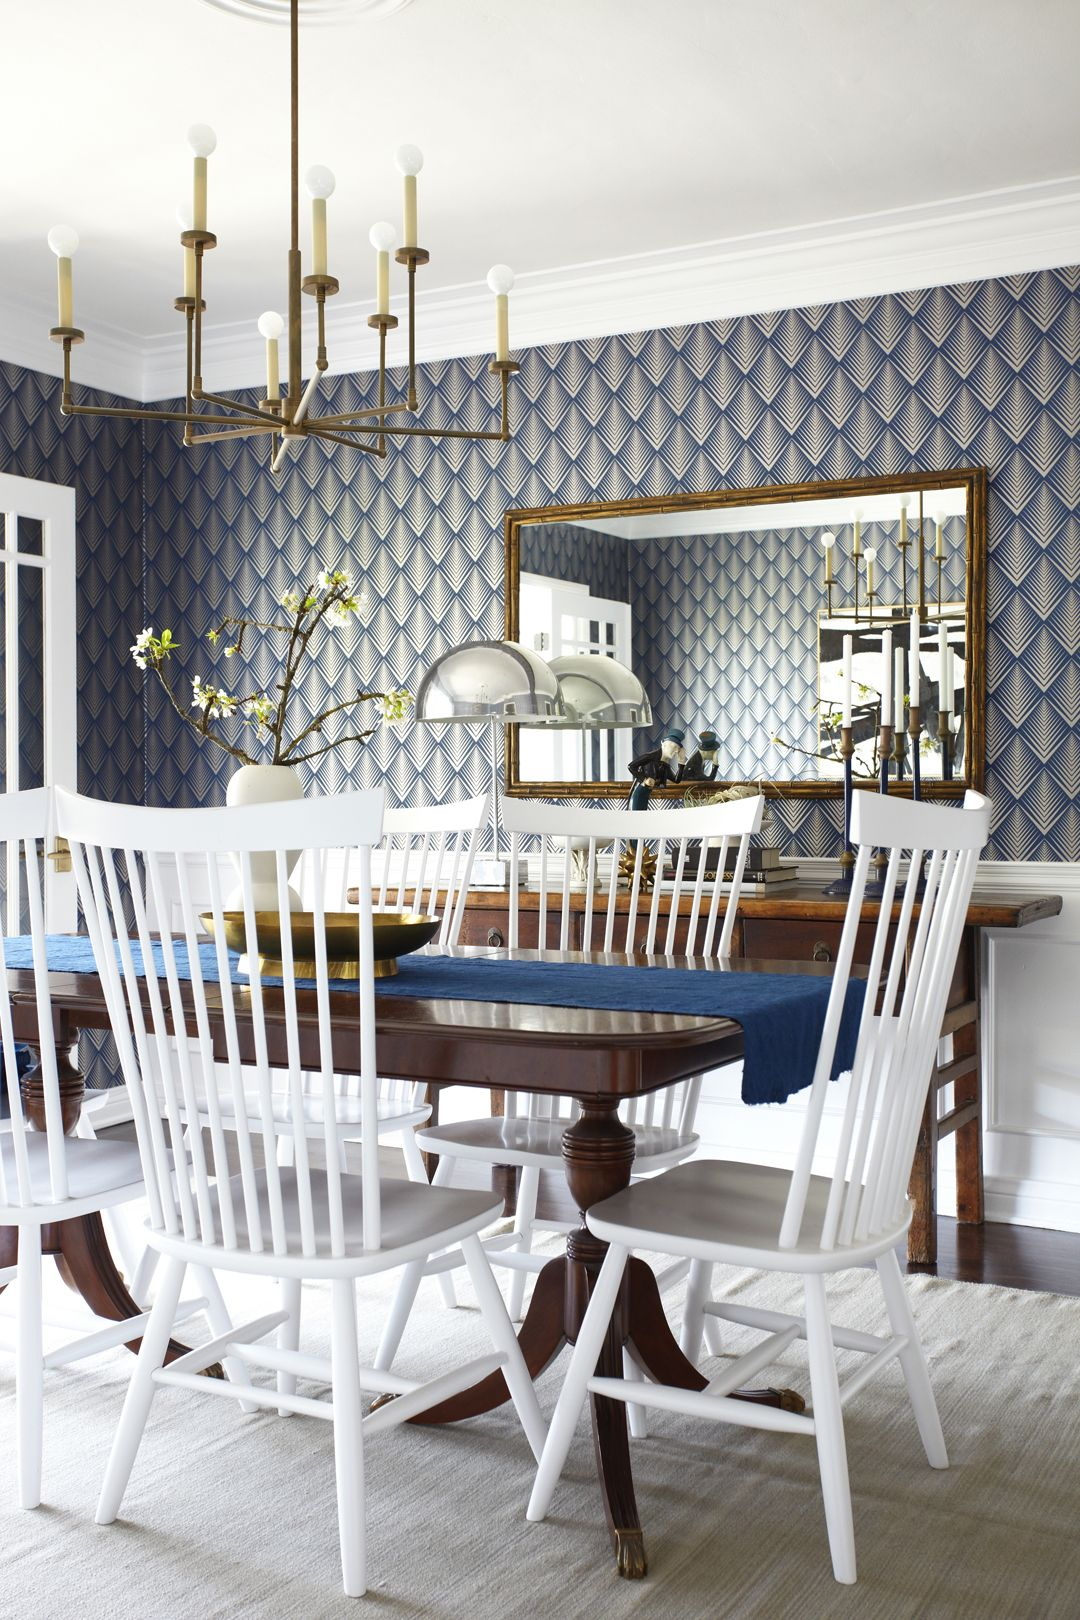 Graphic Blue Wallpaper And Br Accents In The Lorey S Dining Room Via Emily Henderson